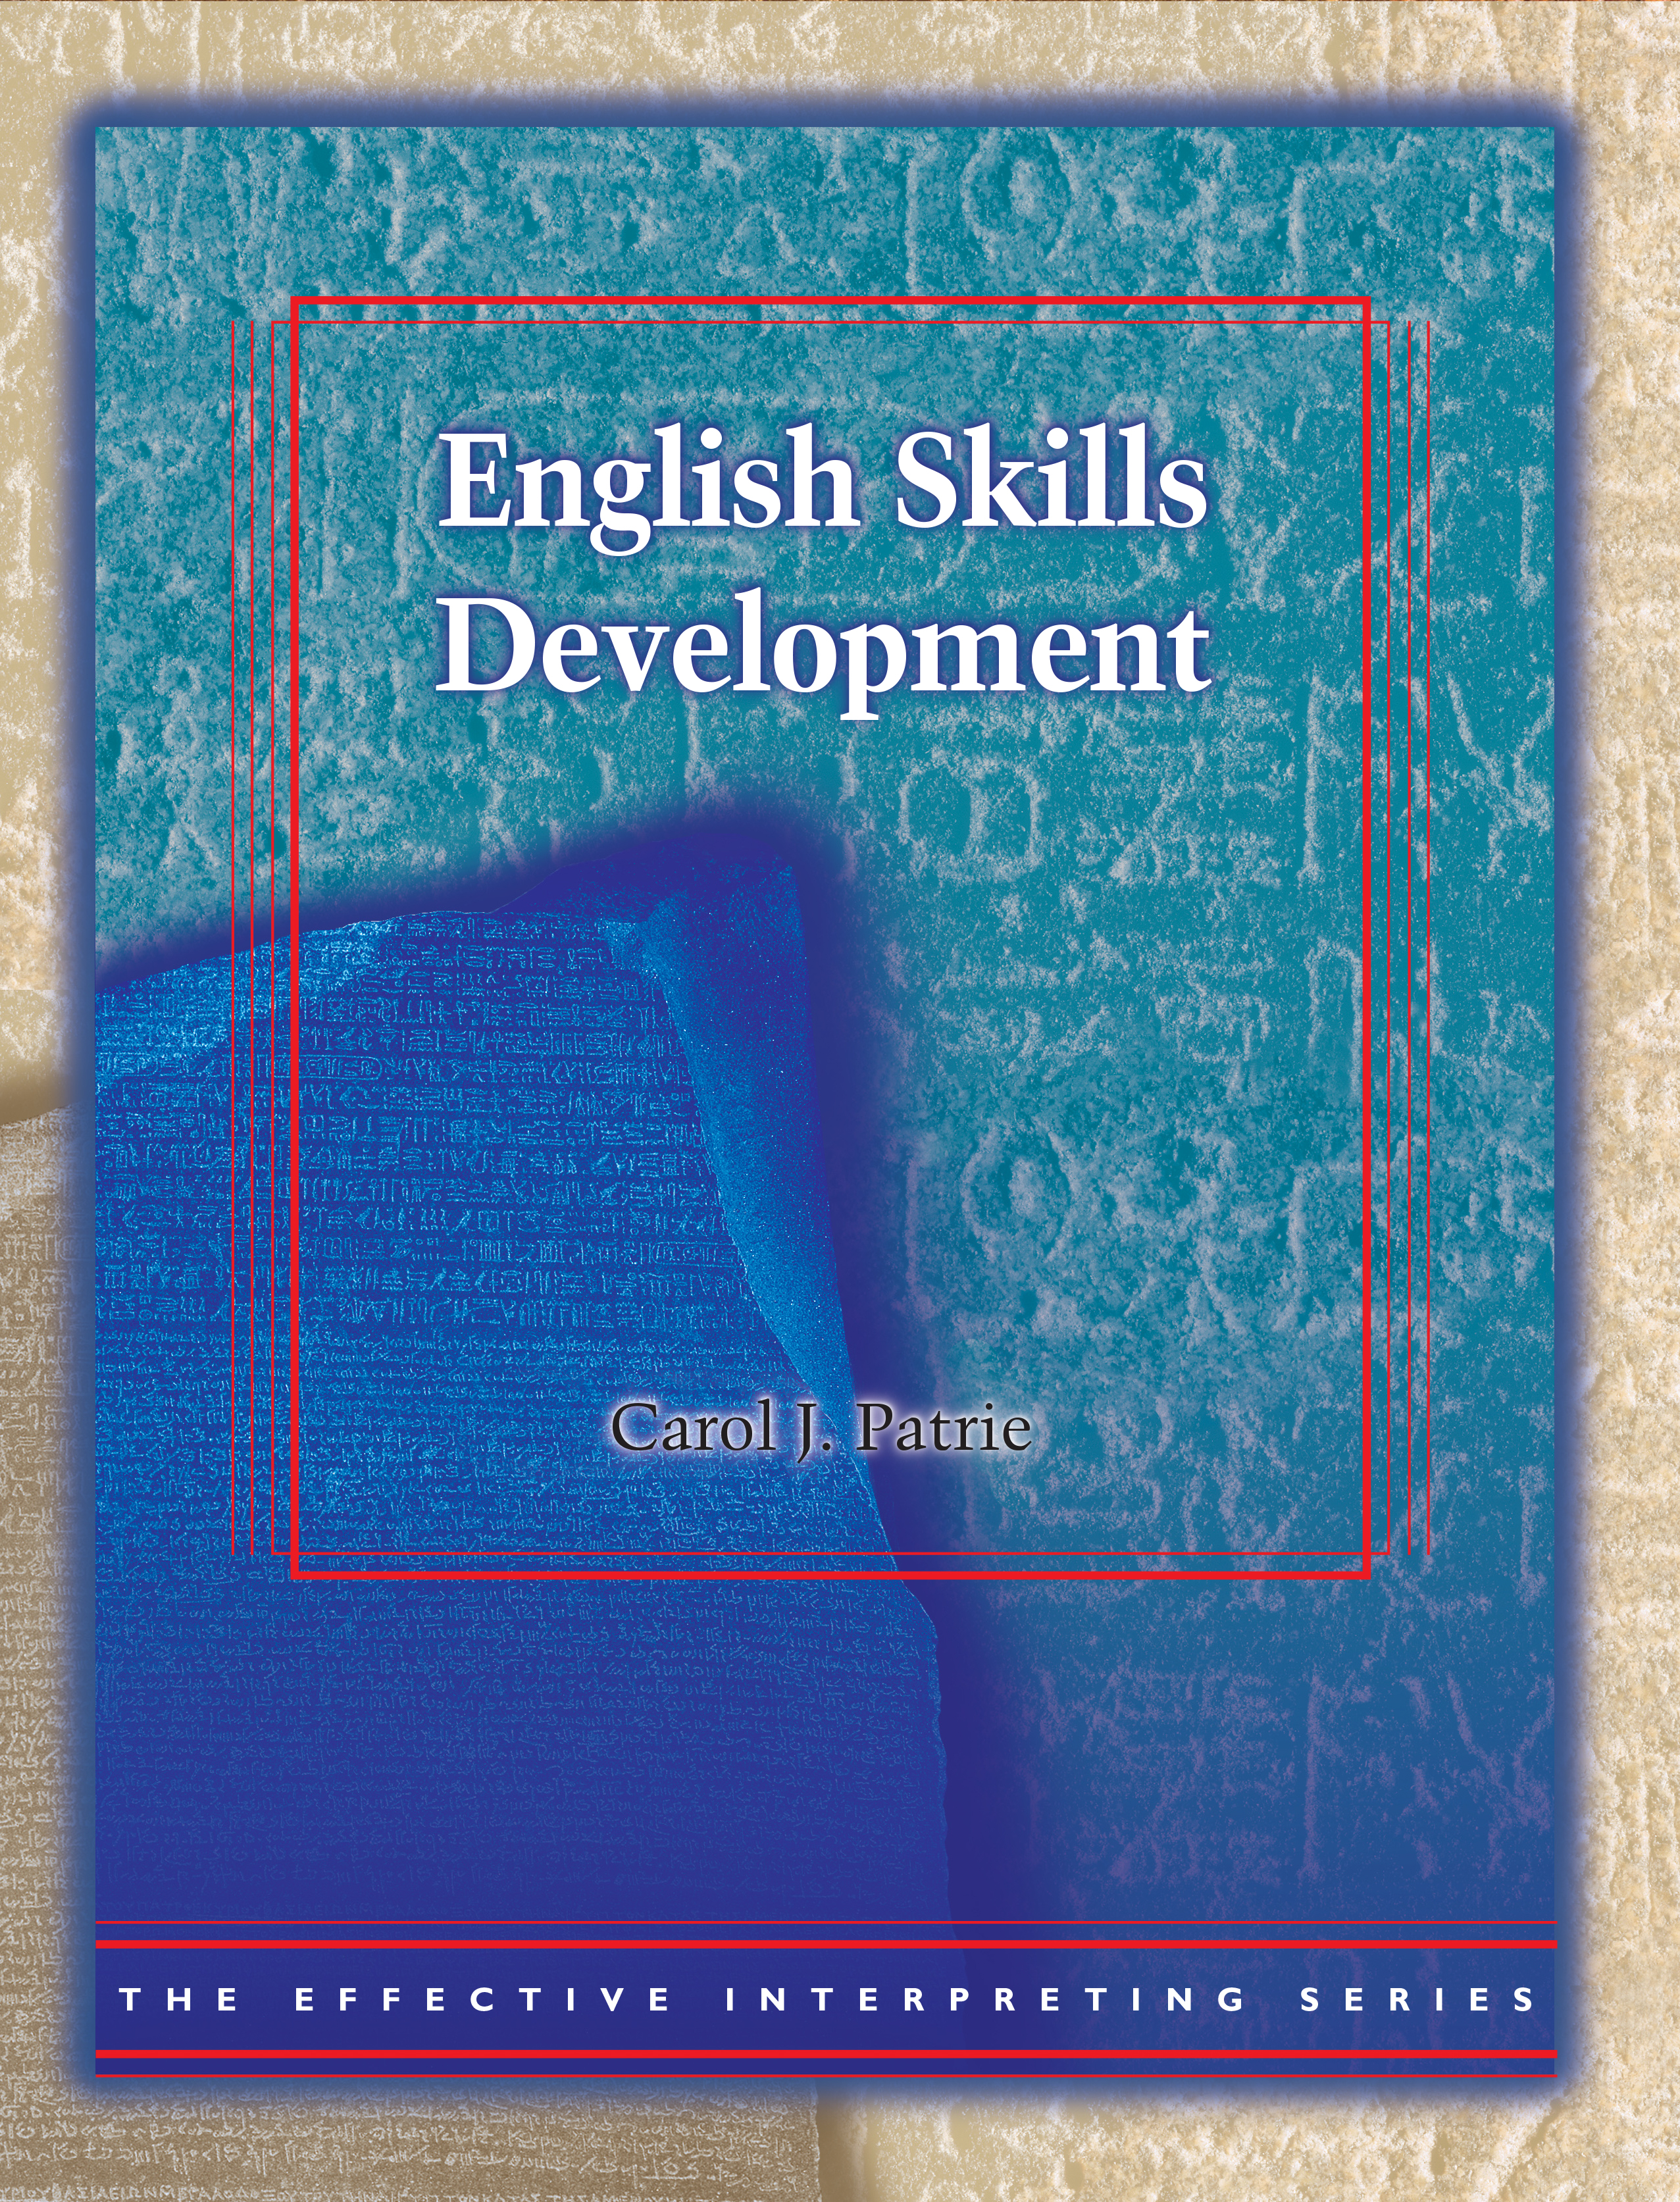 English Skills Development